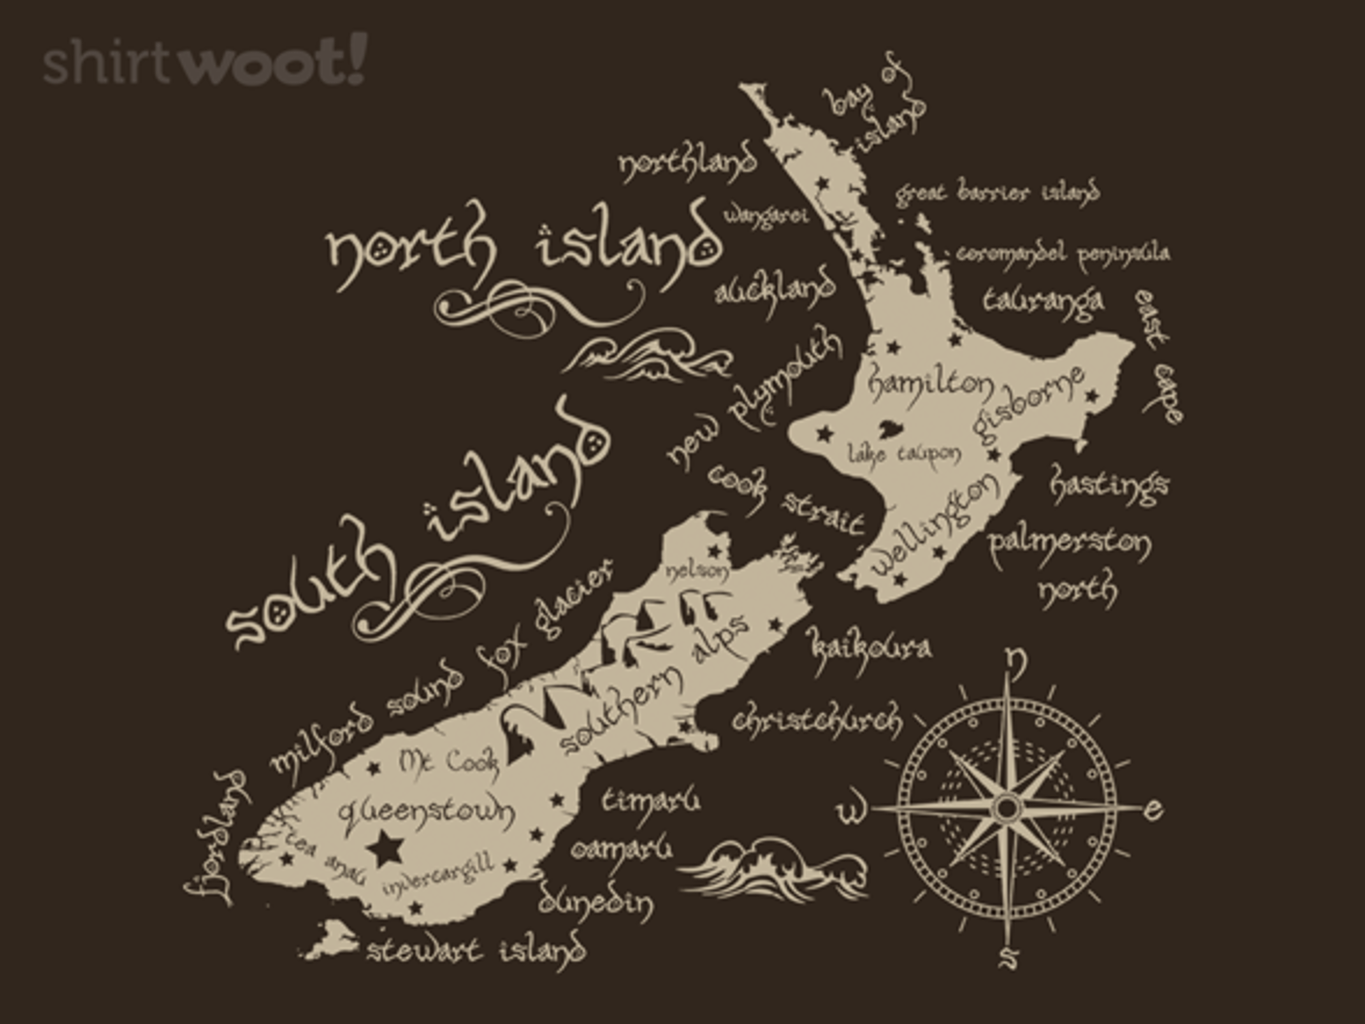 Woot!: Middle New Zealand